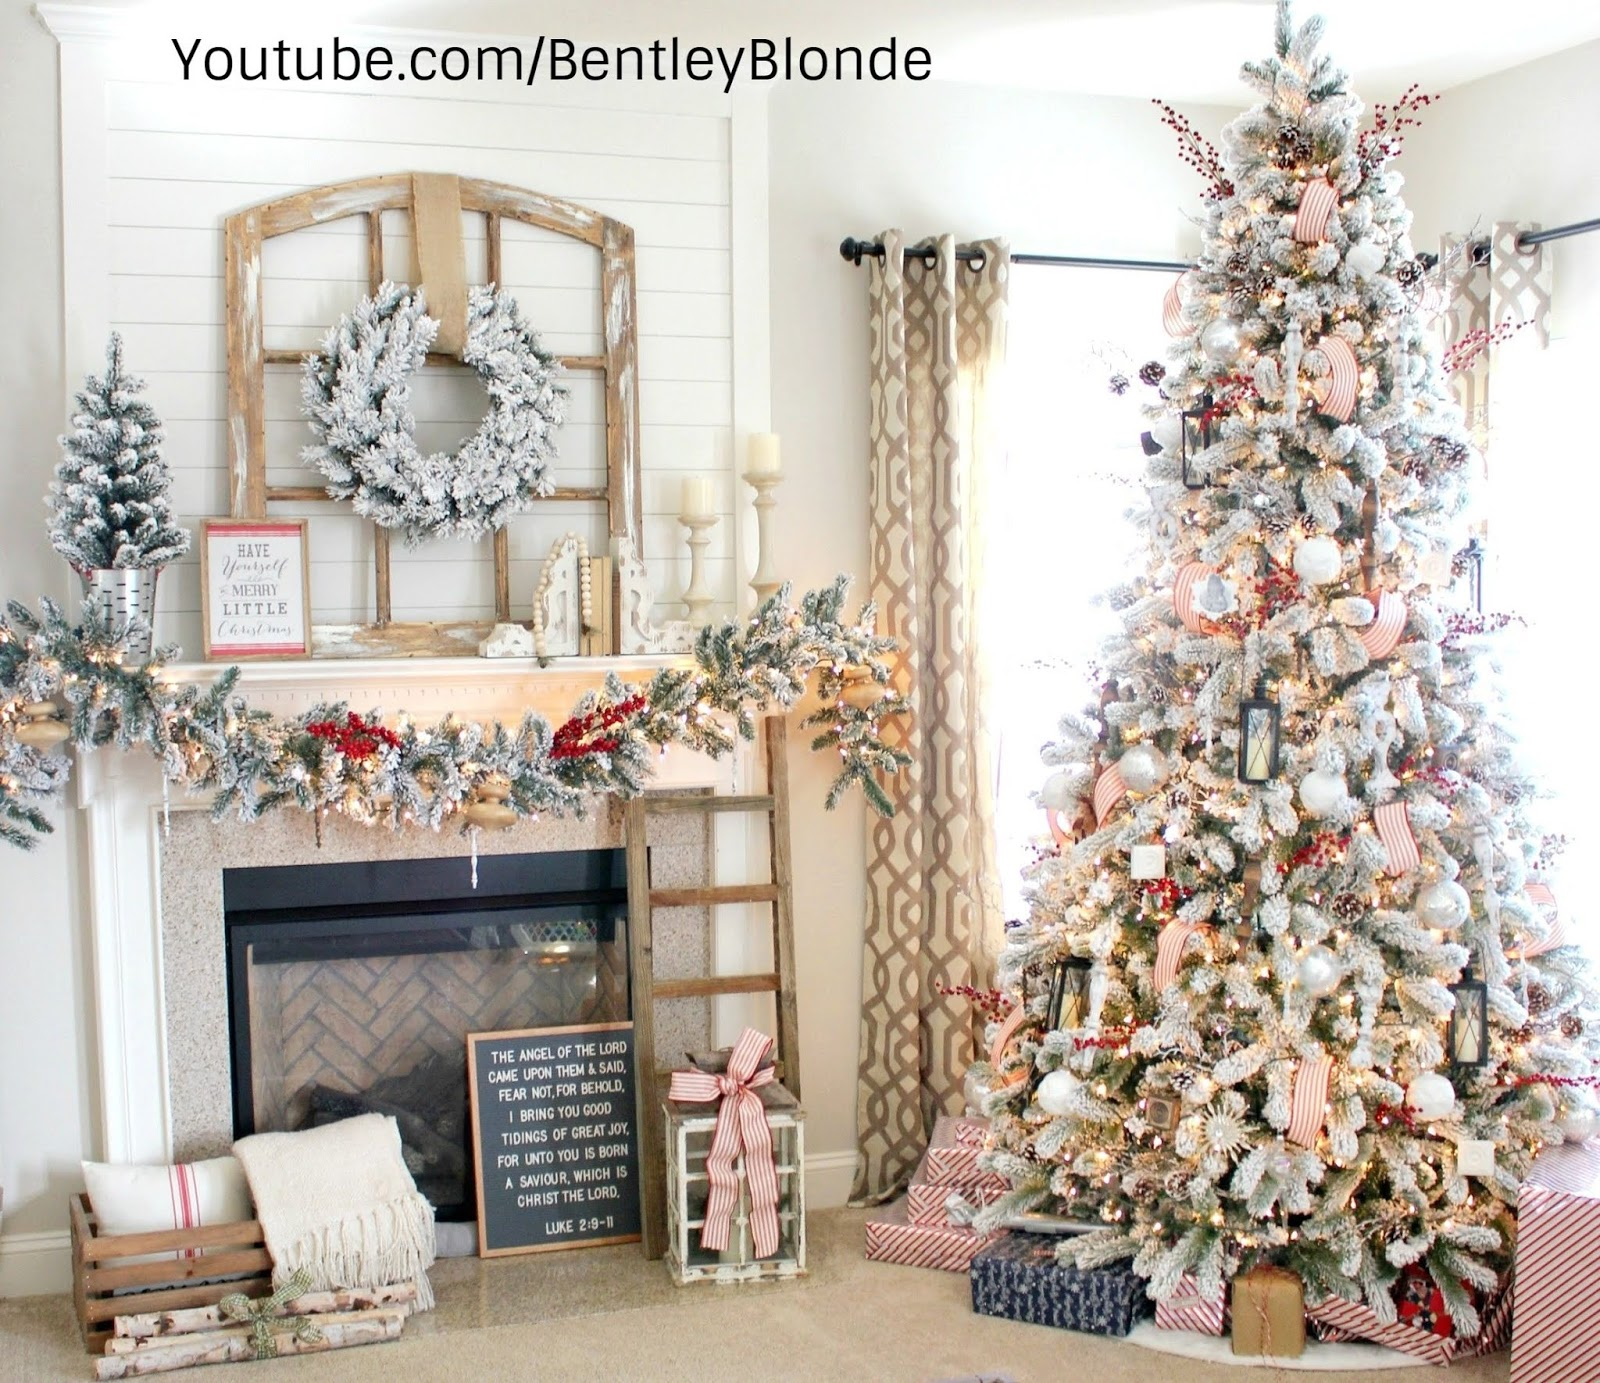 The 2018 Trends For Christmas Decorations: Christmas Decor Trends 2018